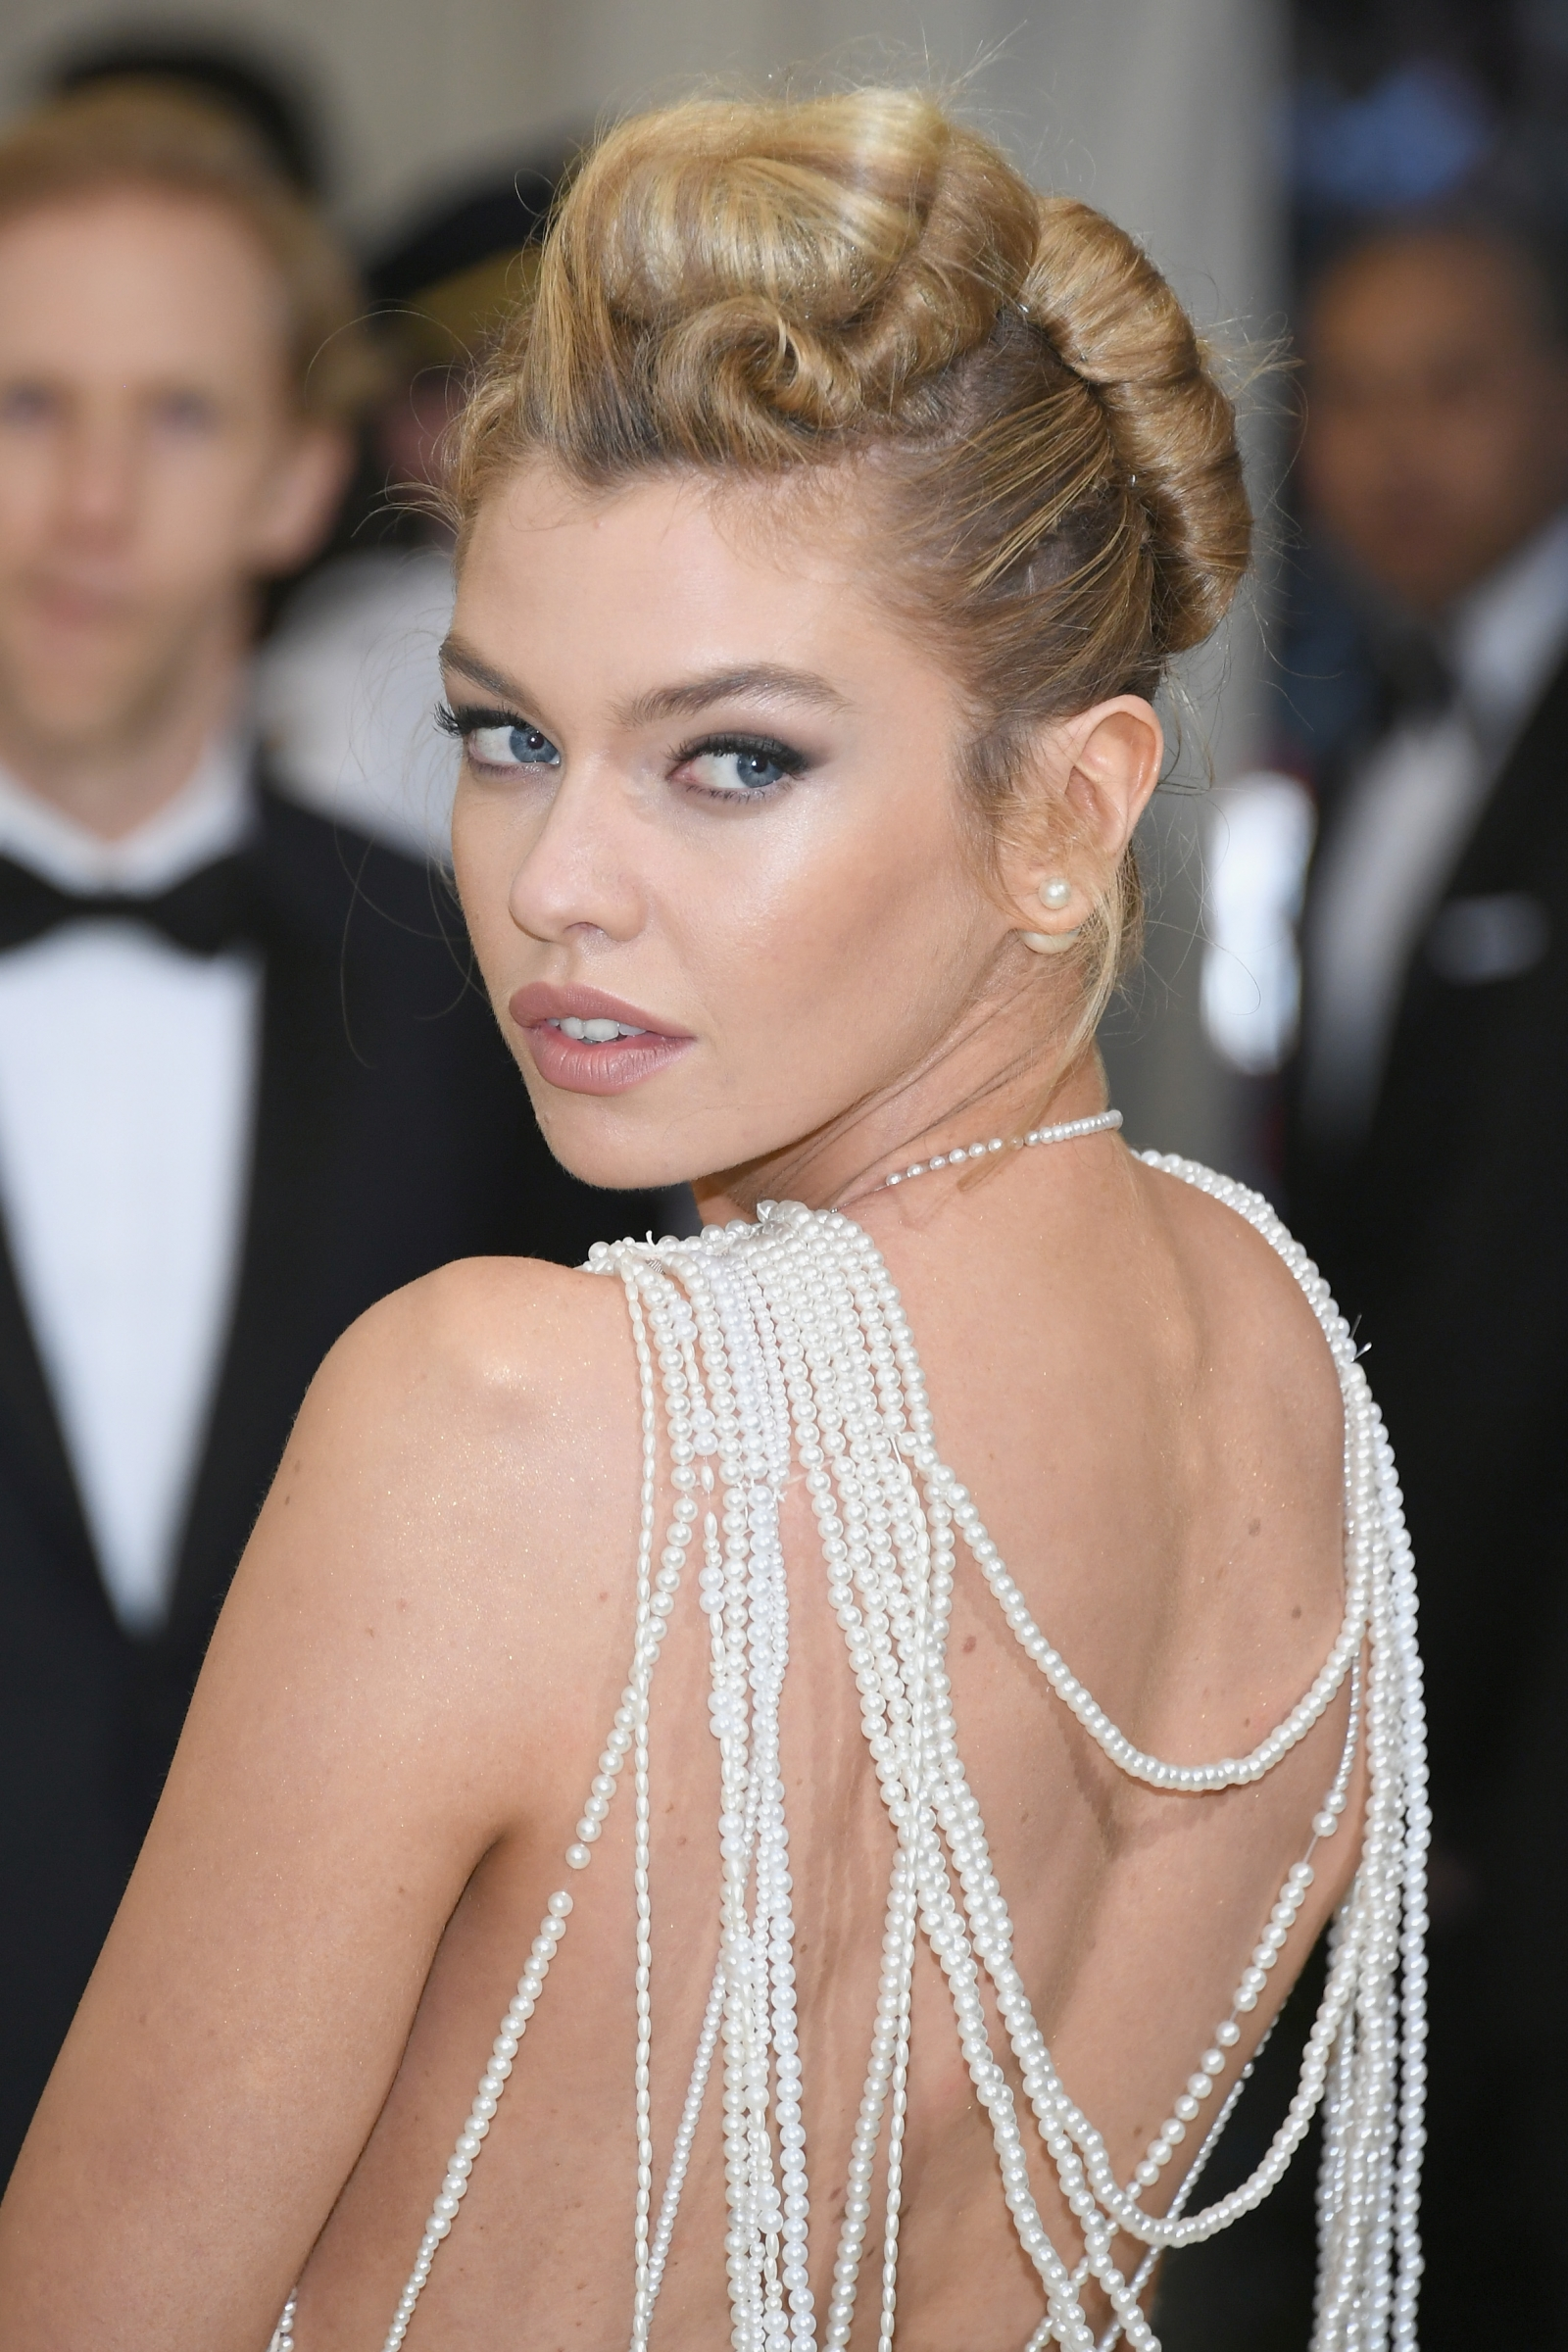 Kristen Stewart Stella Maxwell naked (74 photo) Boobs, Facebook, panties